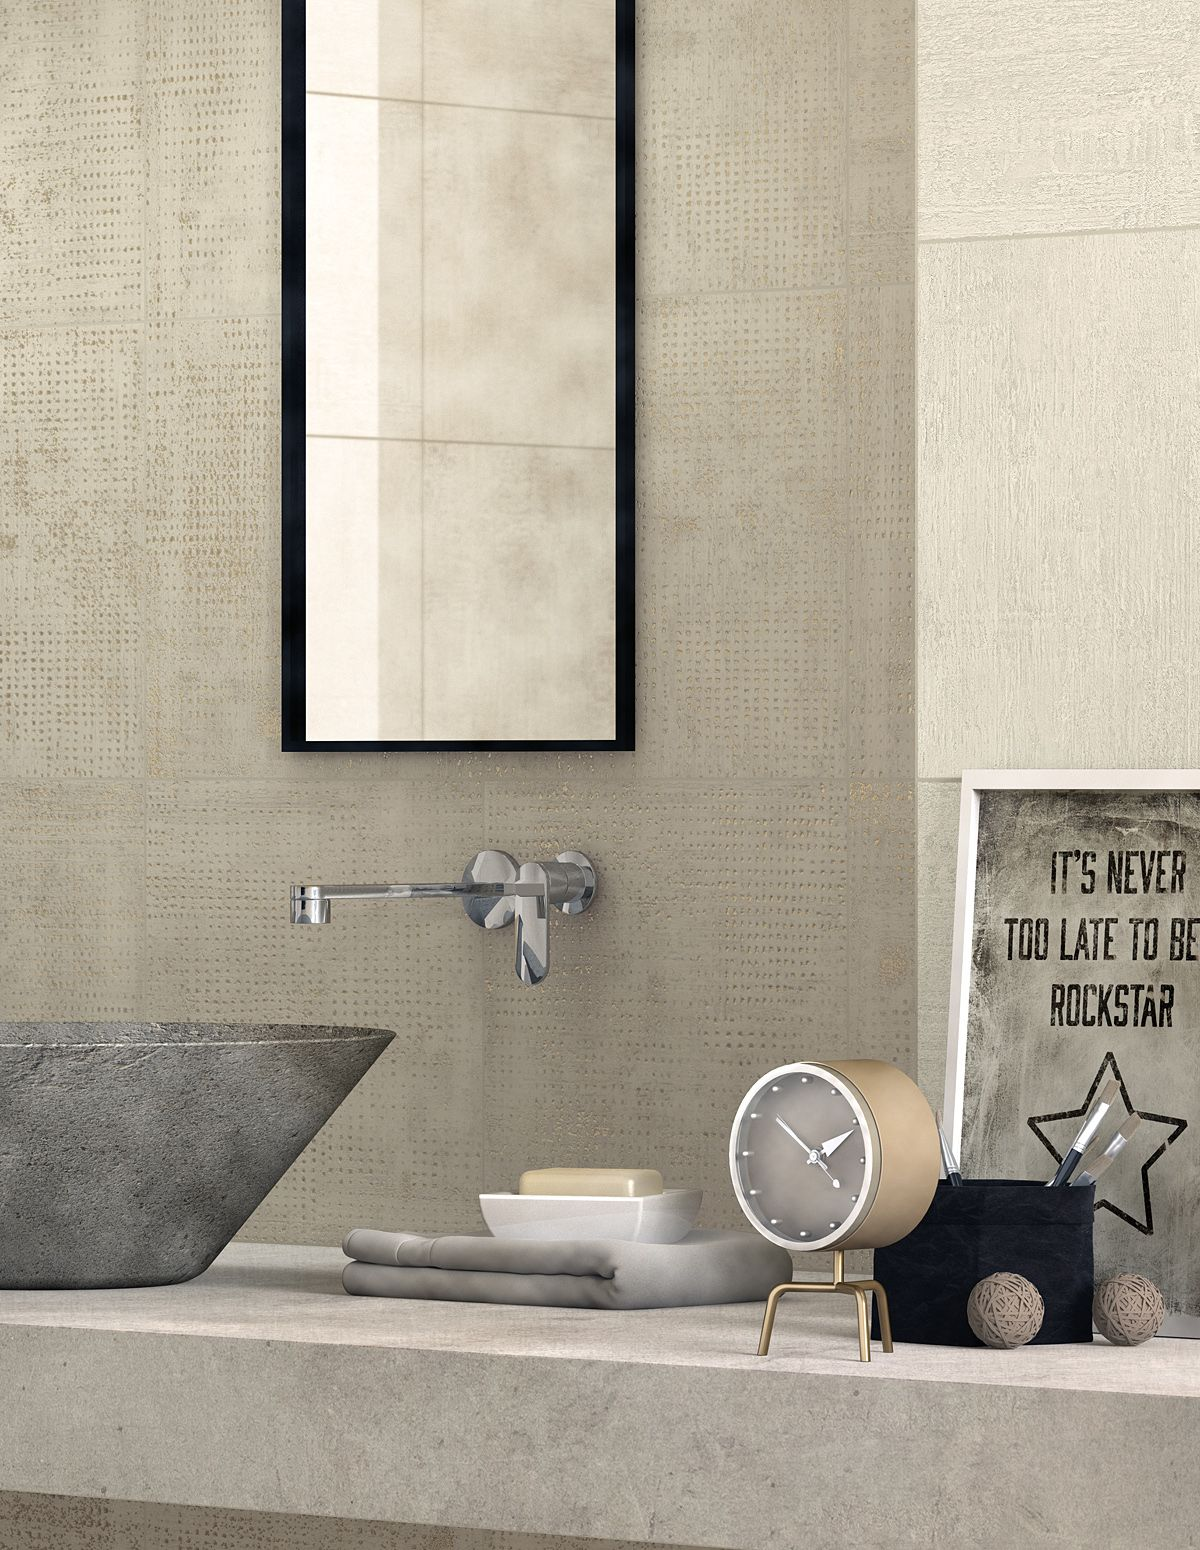 Decorative Wall Tiles Bathroom Our Handmade Series Wall Tile In A Slick Modern Bathroom